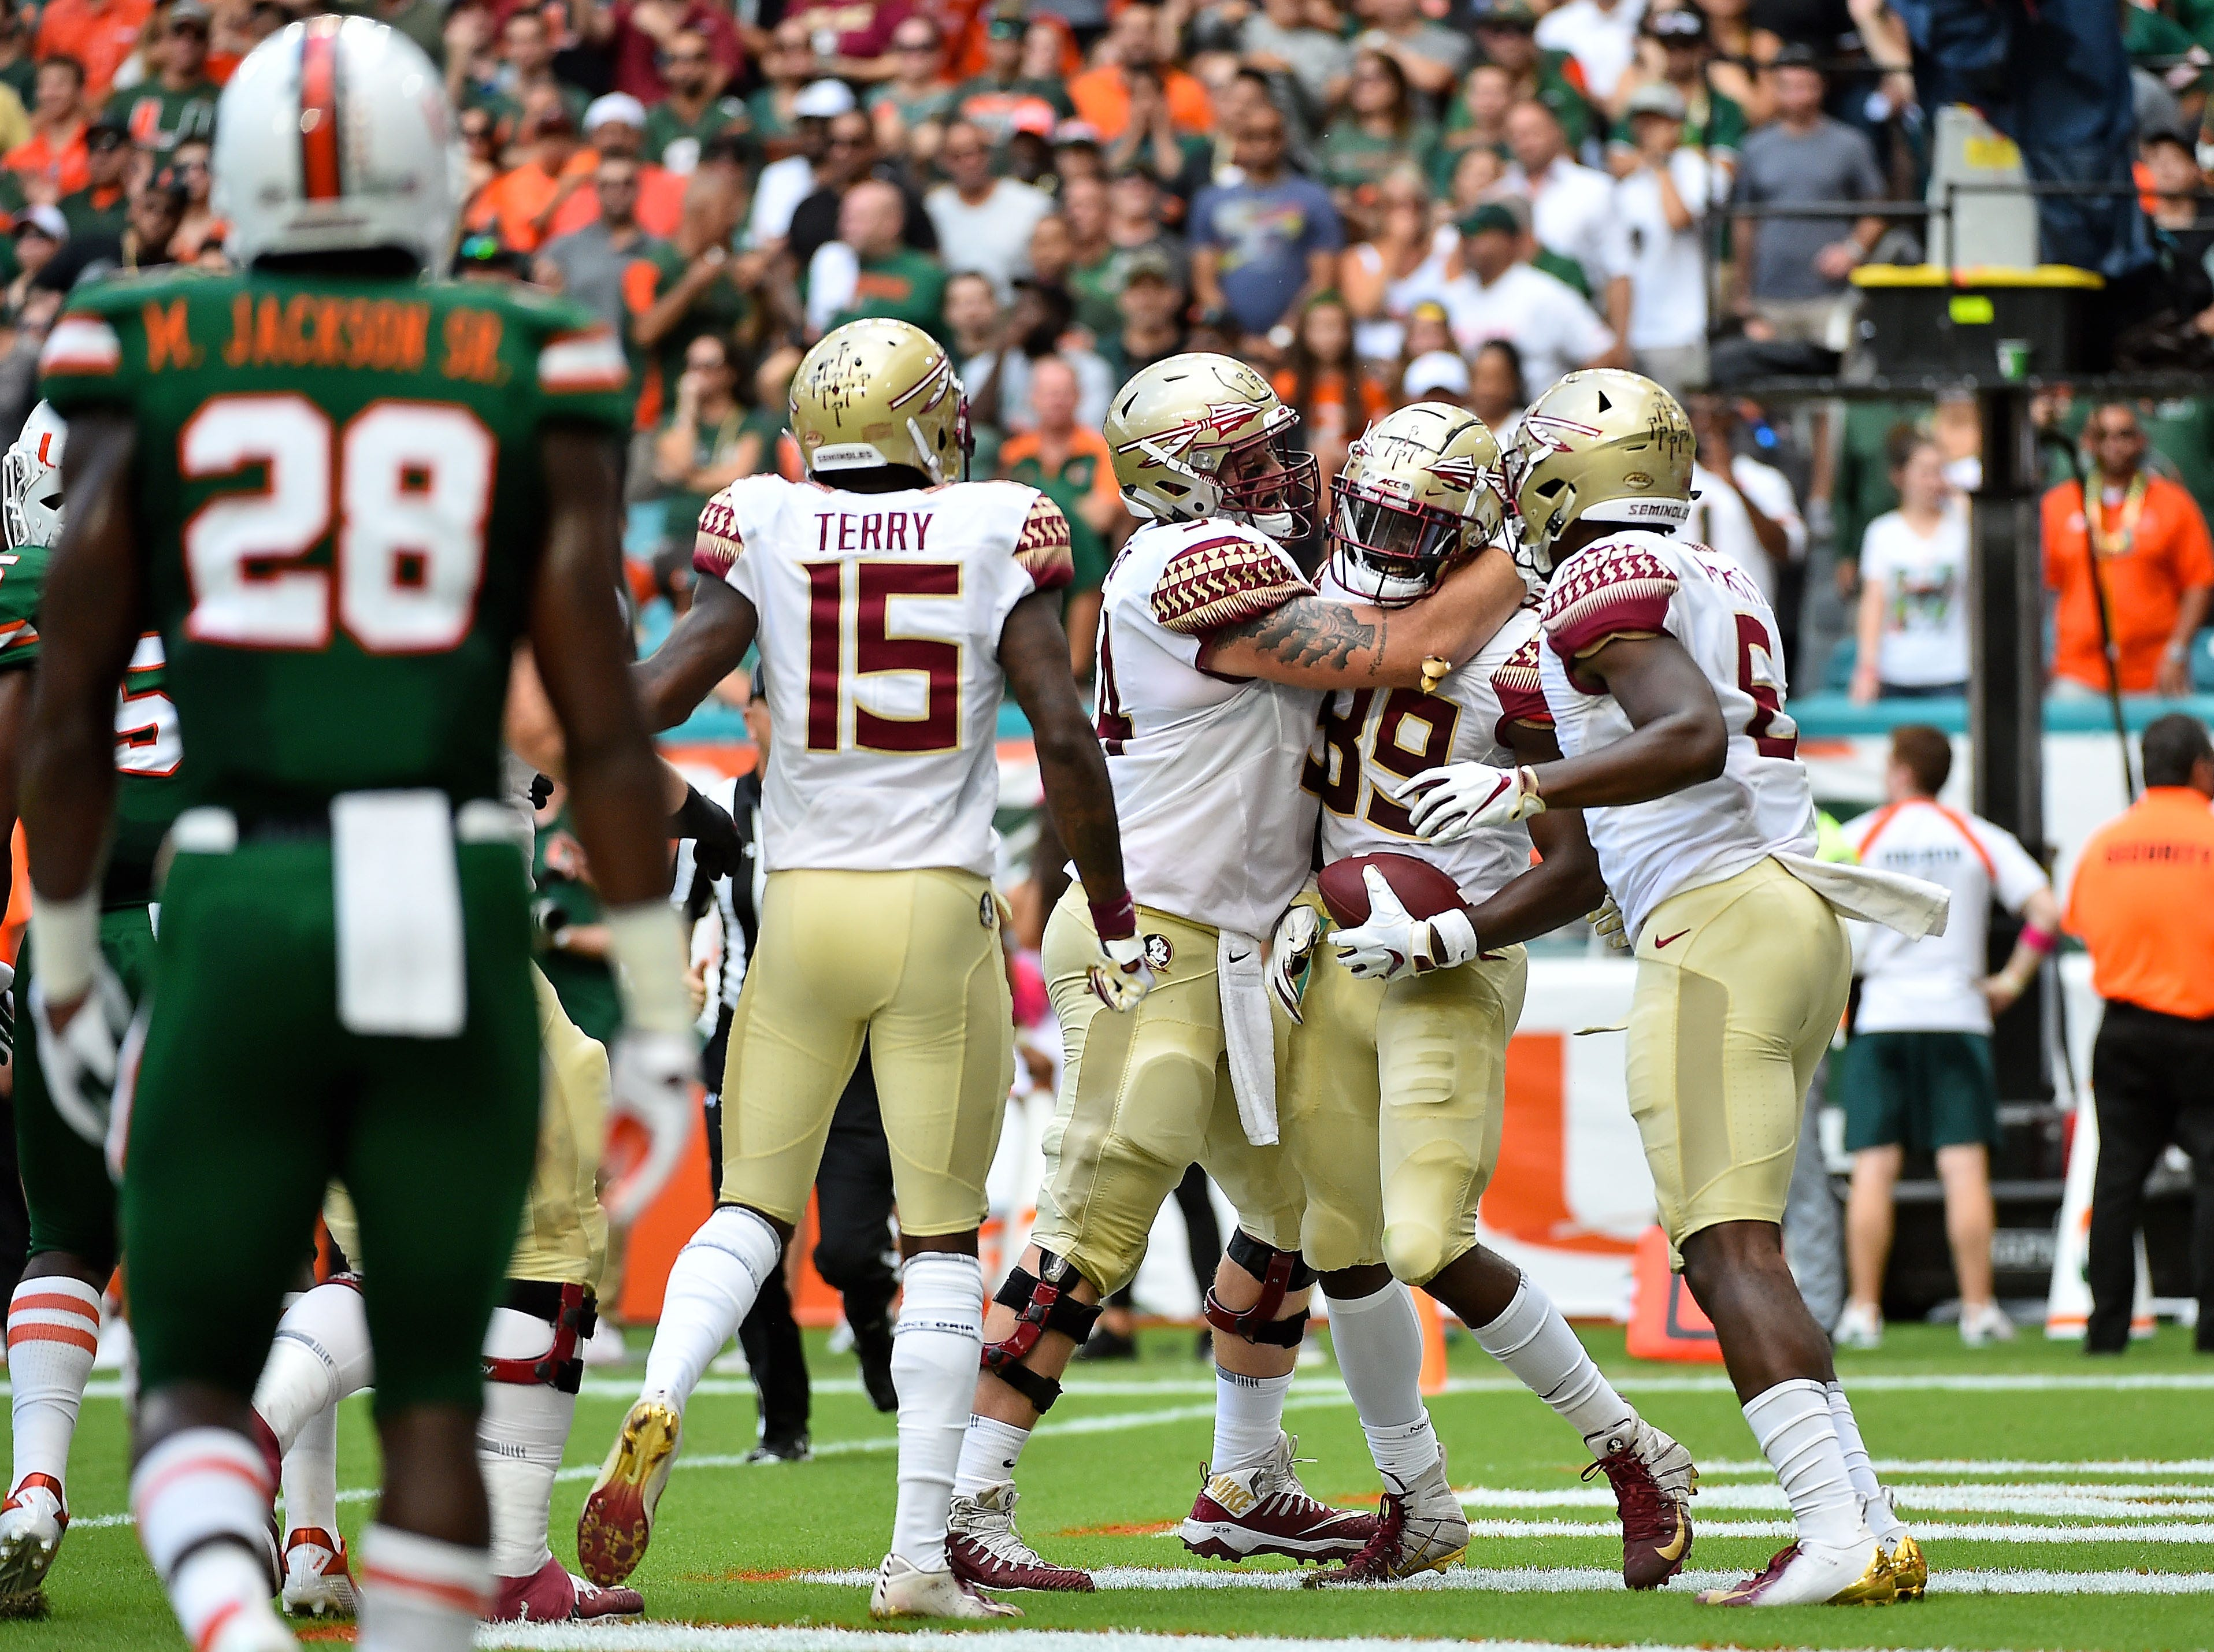 Oct 6, 2018; Miami Gardens, FL, USA; Florida State Seminoles wide receiver Keith Gavin (89) celebrates his touchdown against the Miami Hurricanes during the first half at Hard Rock Stadium. Mandatory Credit: Jasen Vinlove-USA TODAY Sports